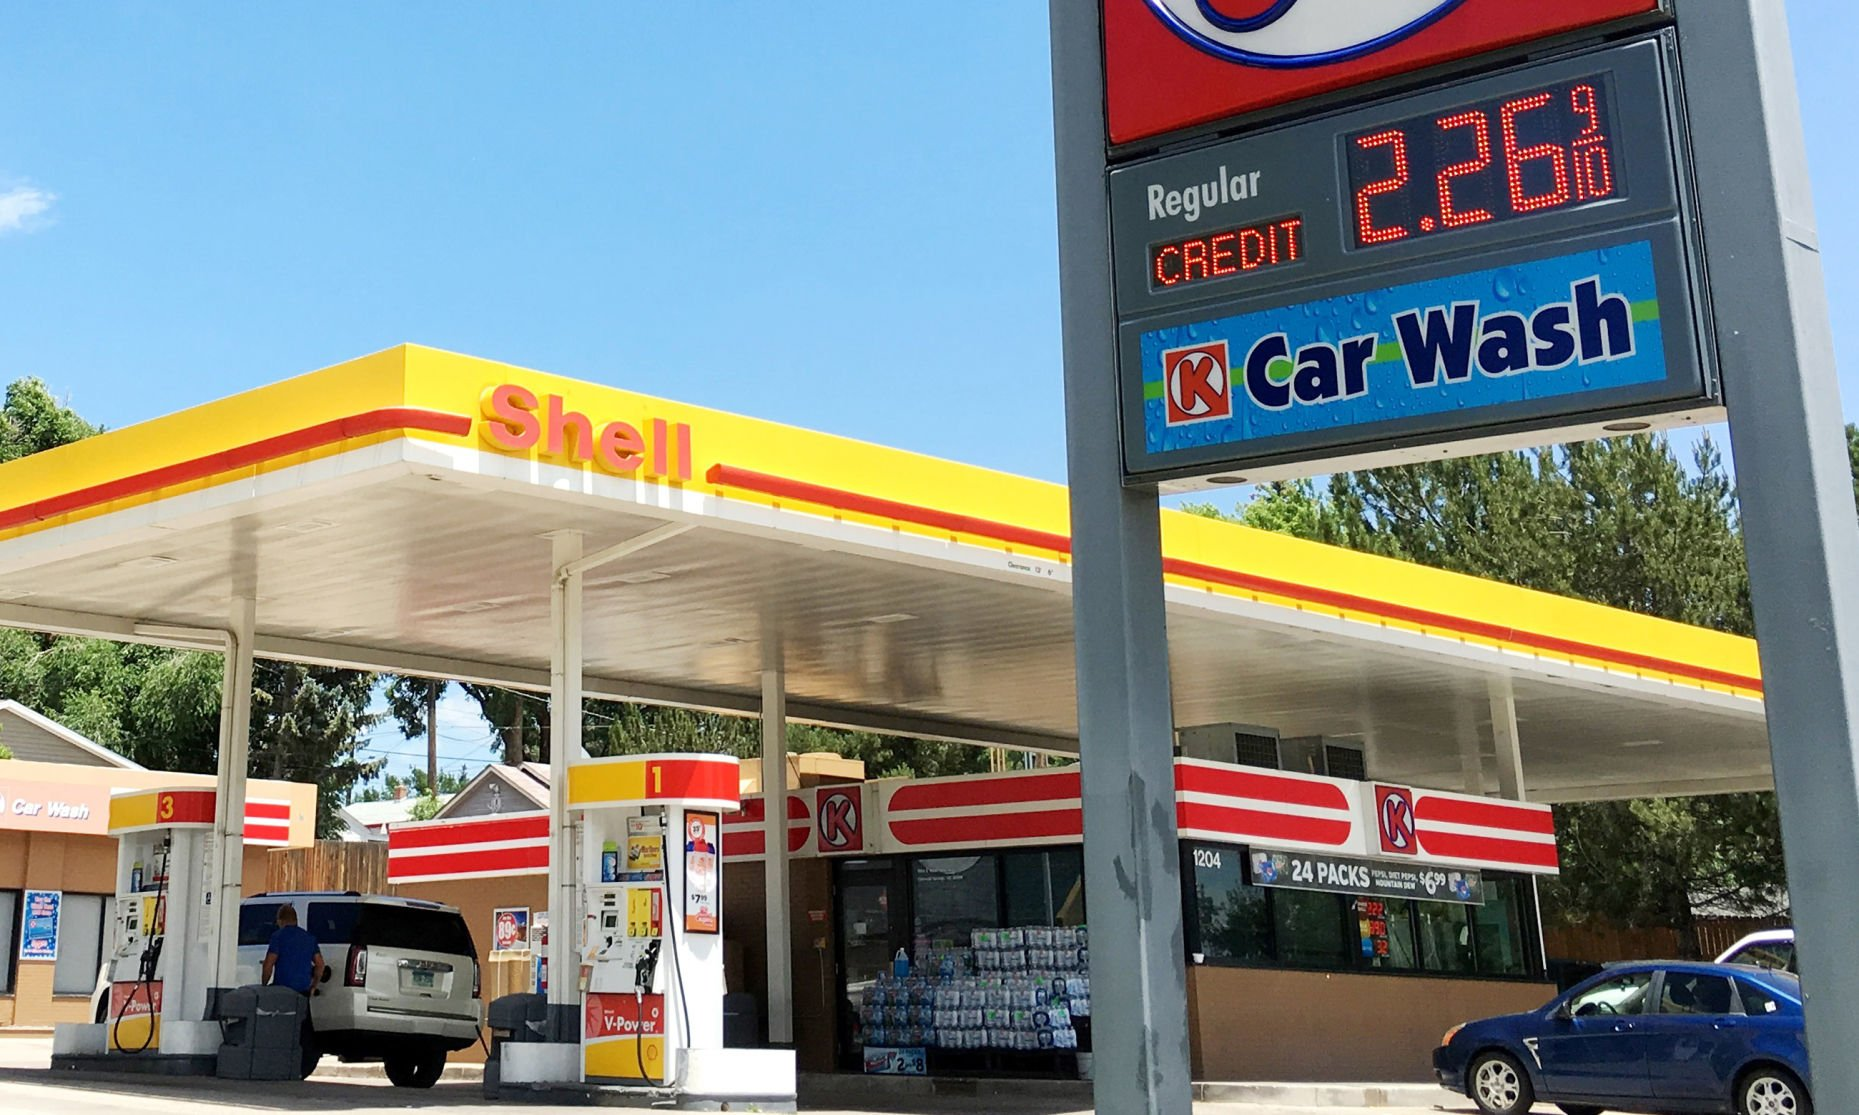 colorado springs gas prices have been climbing for weeks is a rh gazette com